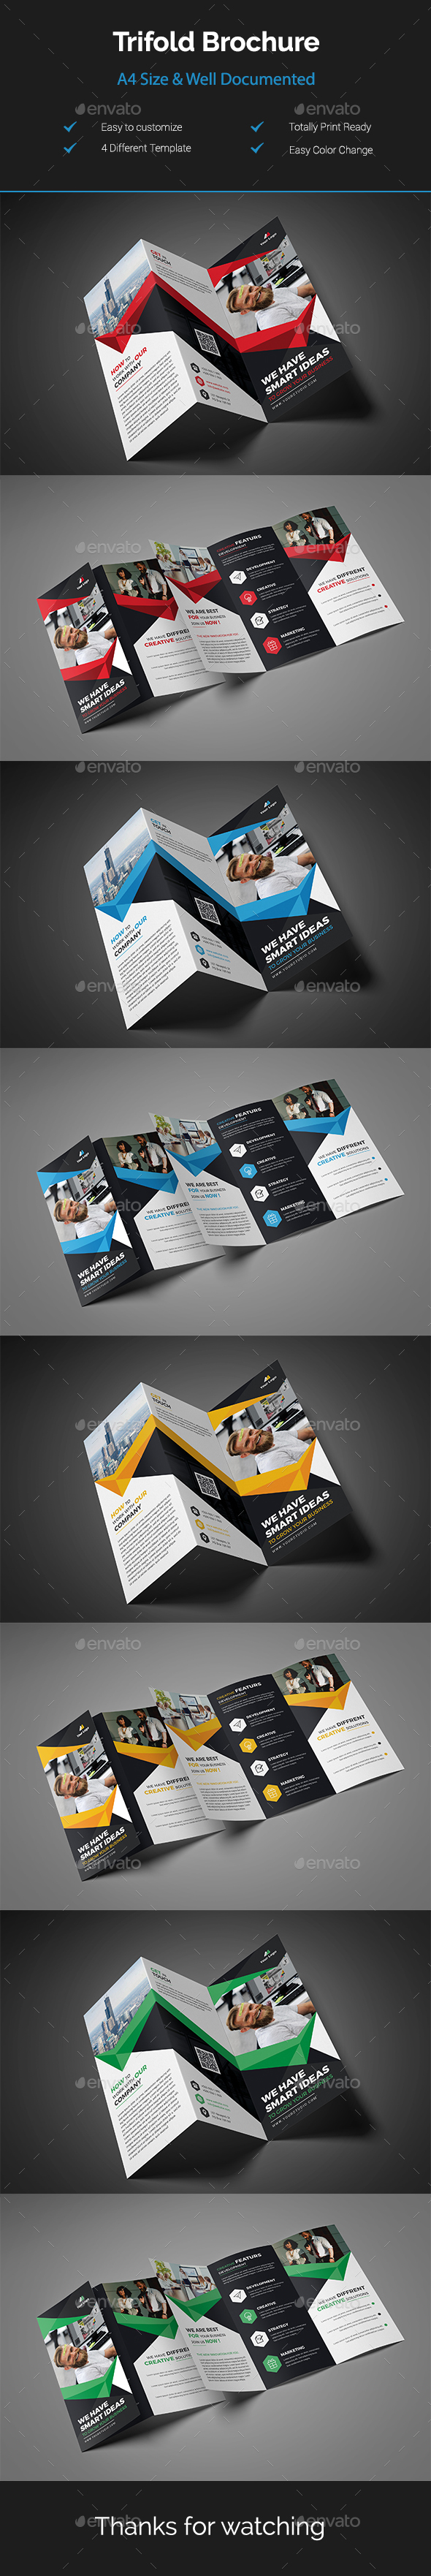 GraphicRiver Trifold Brochure 20918608